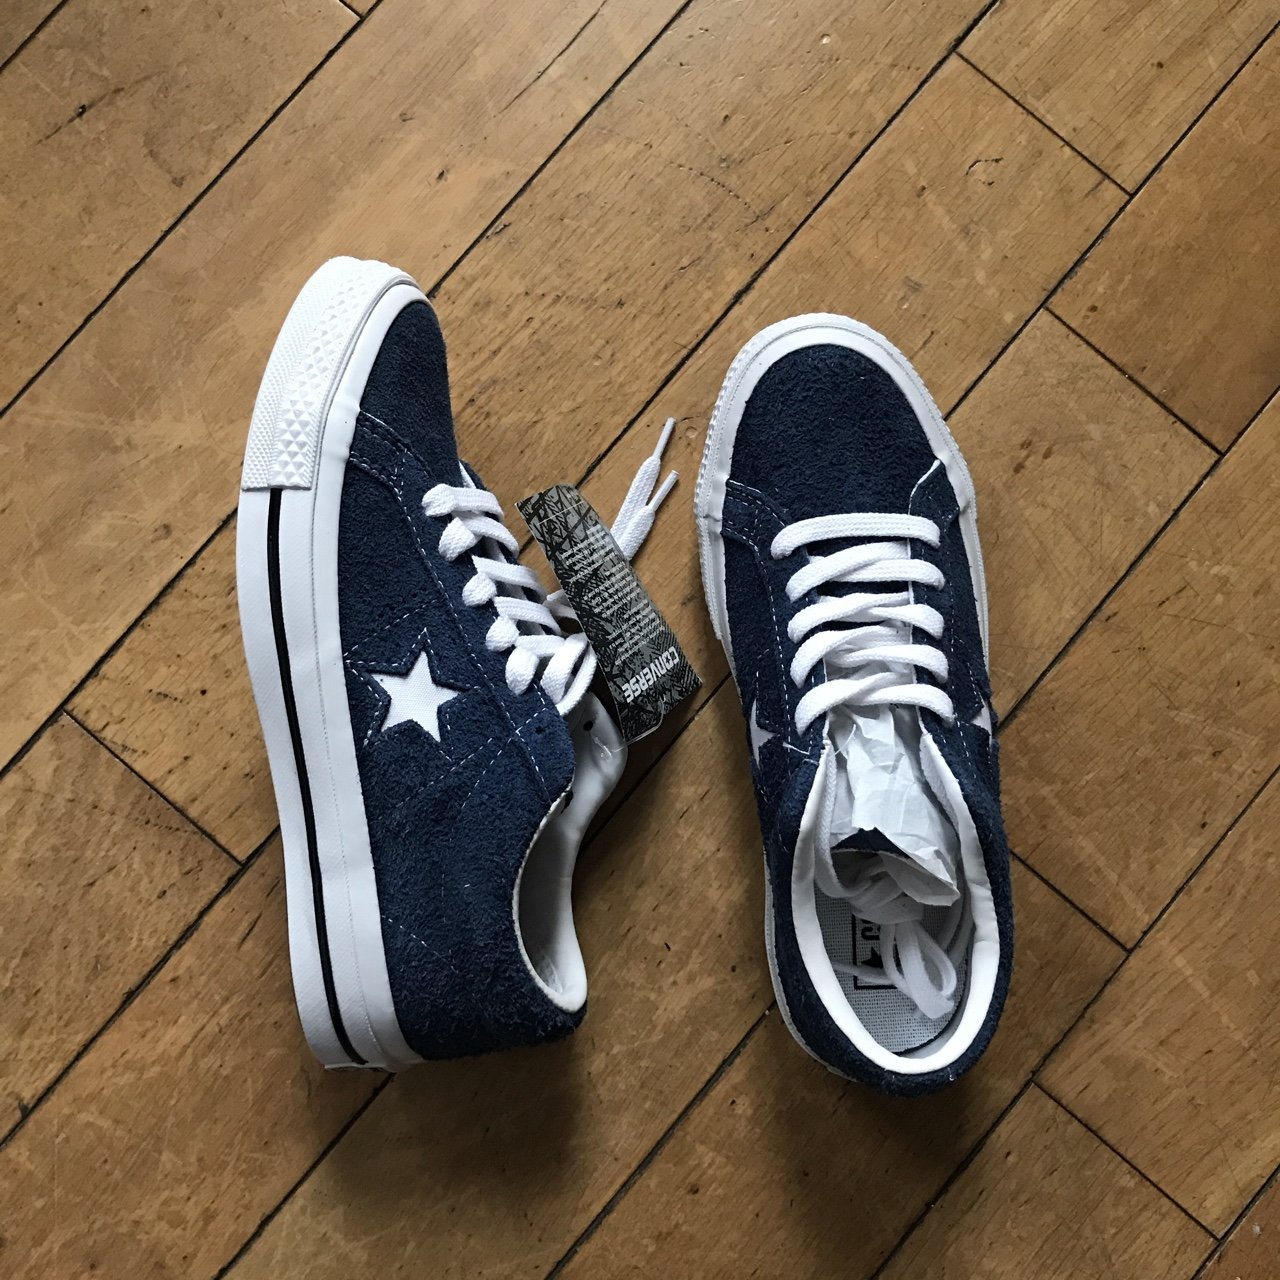 Brand New One Star converse size 5 women s navy white suede - Depop b0f9a0dc41